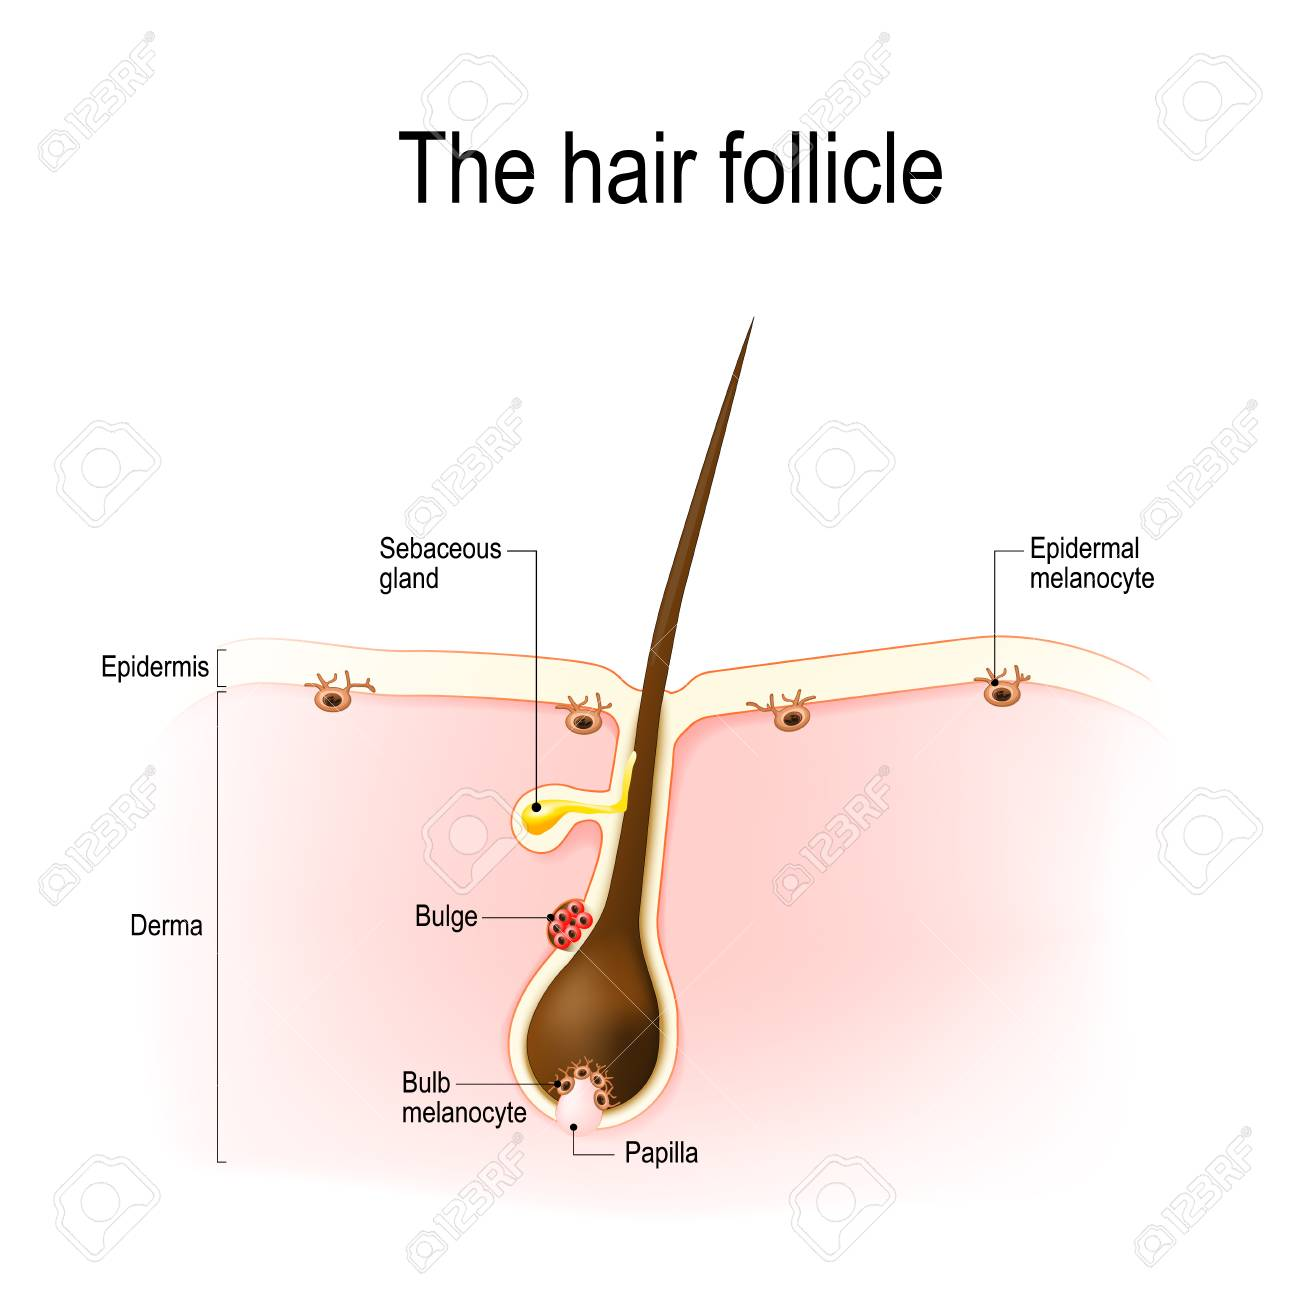 Anatomy Of The Hair Follicle. Distribution Of Differentiated ...